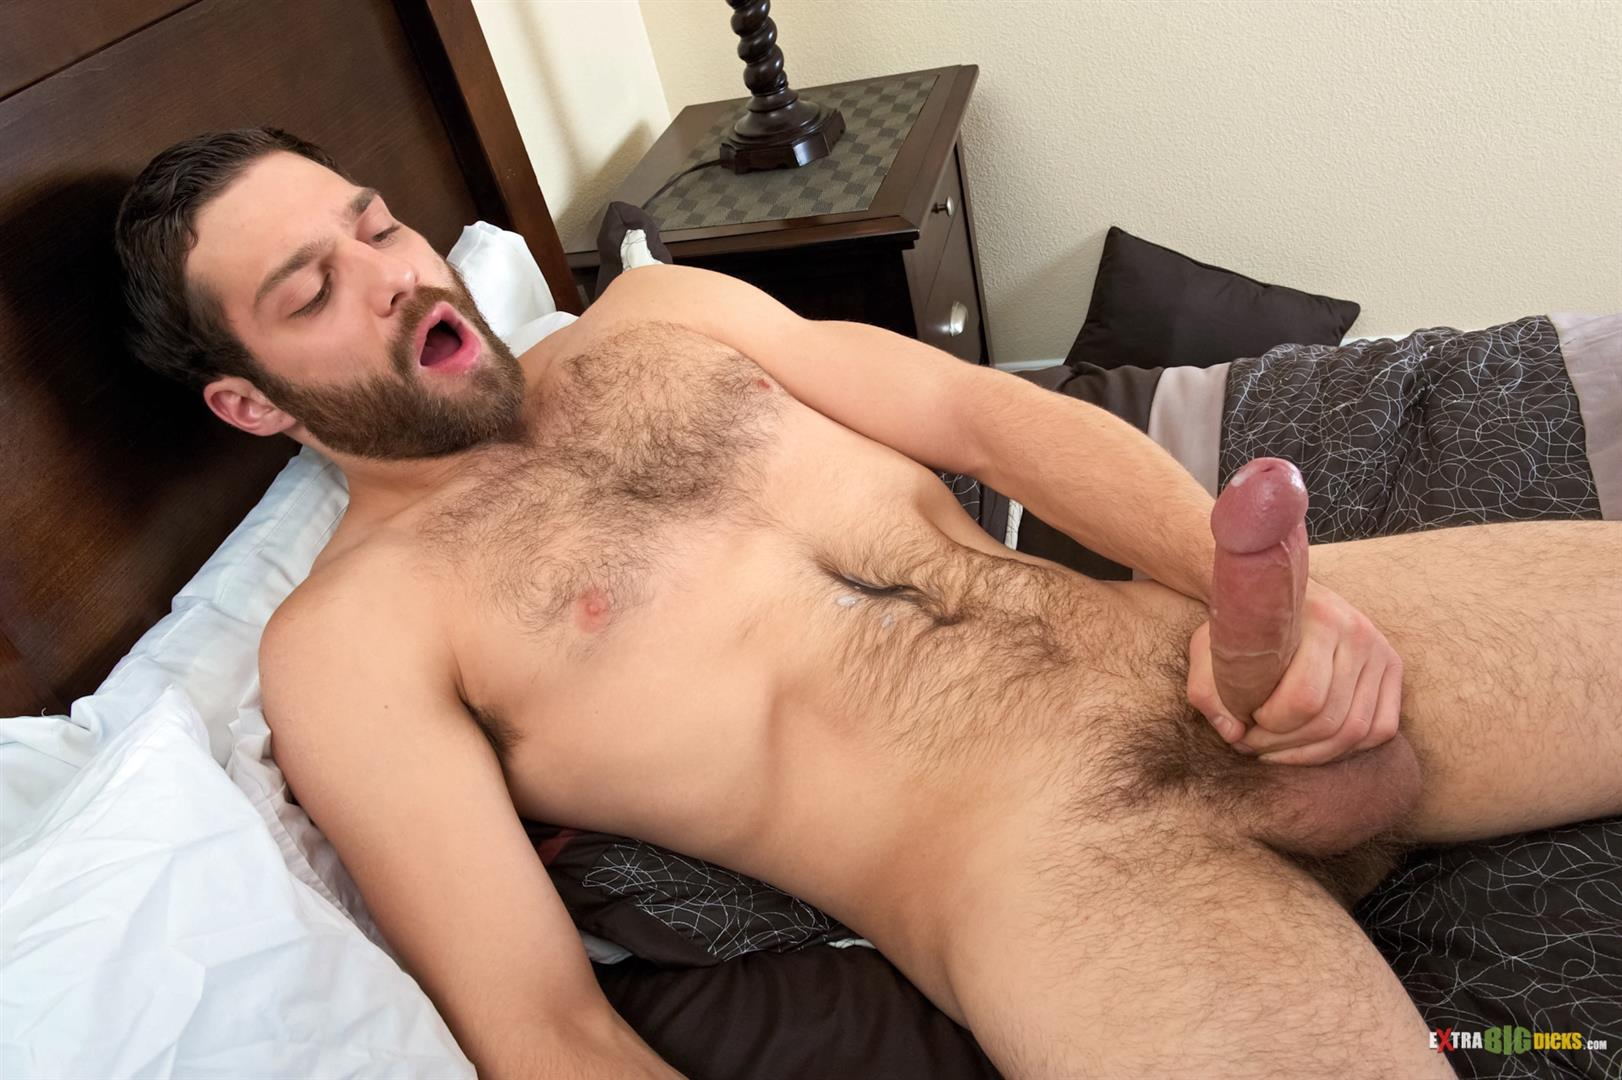 Naked hairy men jerking off big cock quality porn